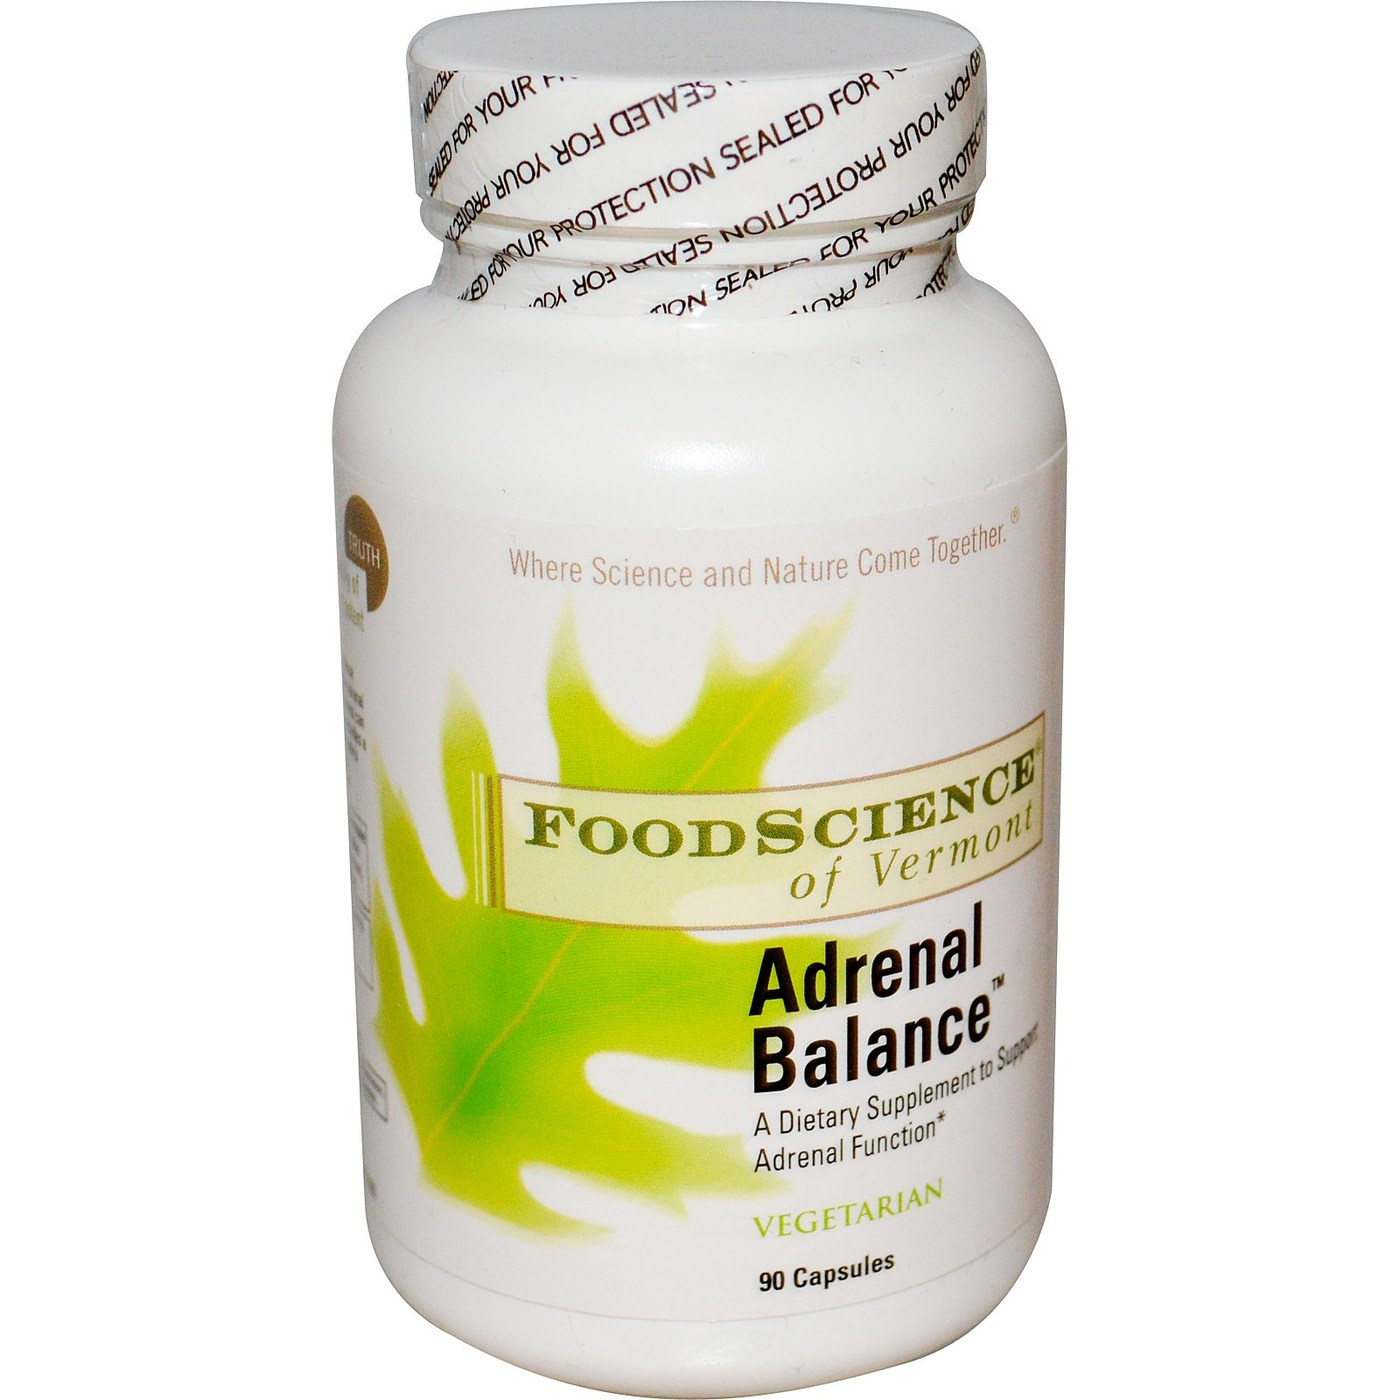 FoodScience of Vermont Adrenal Balance - 90 VCapsules